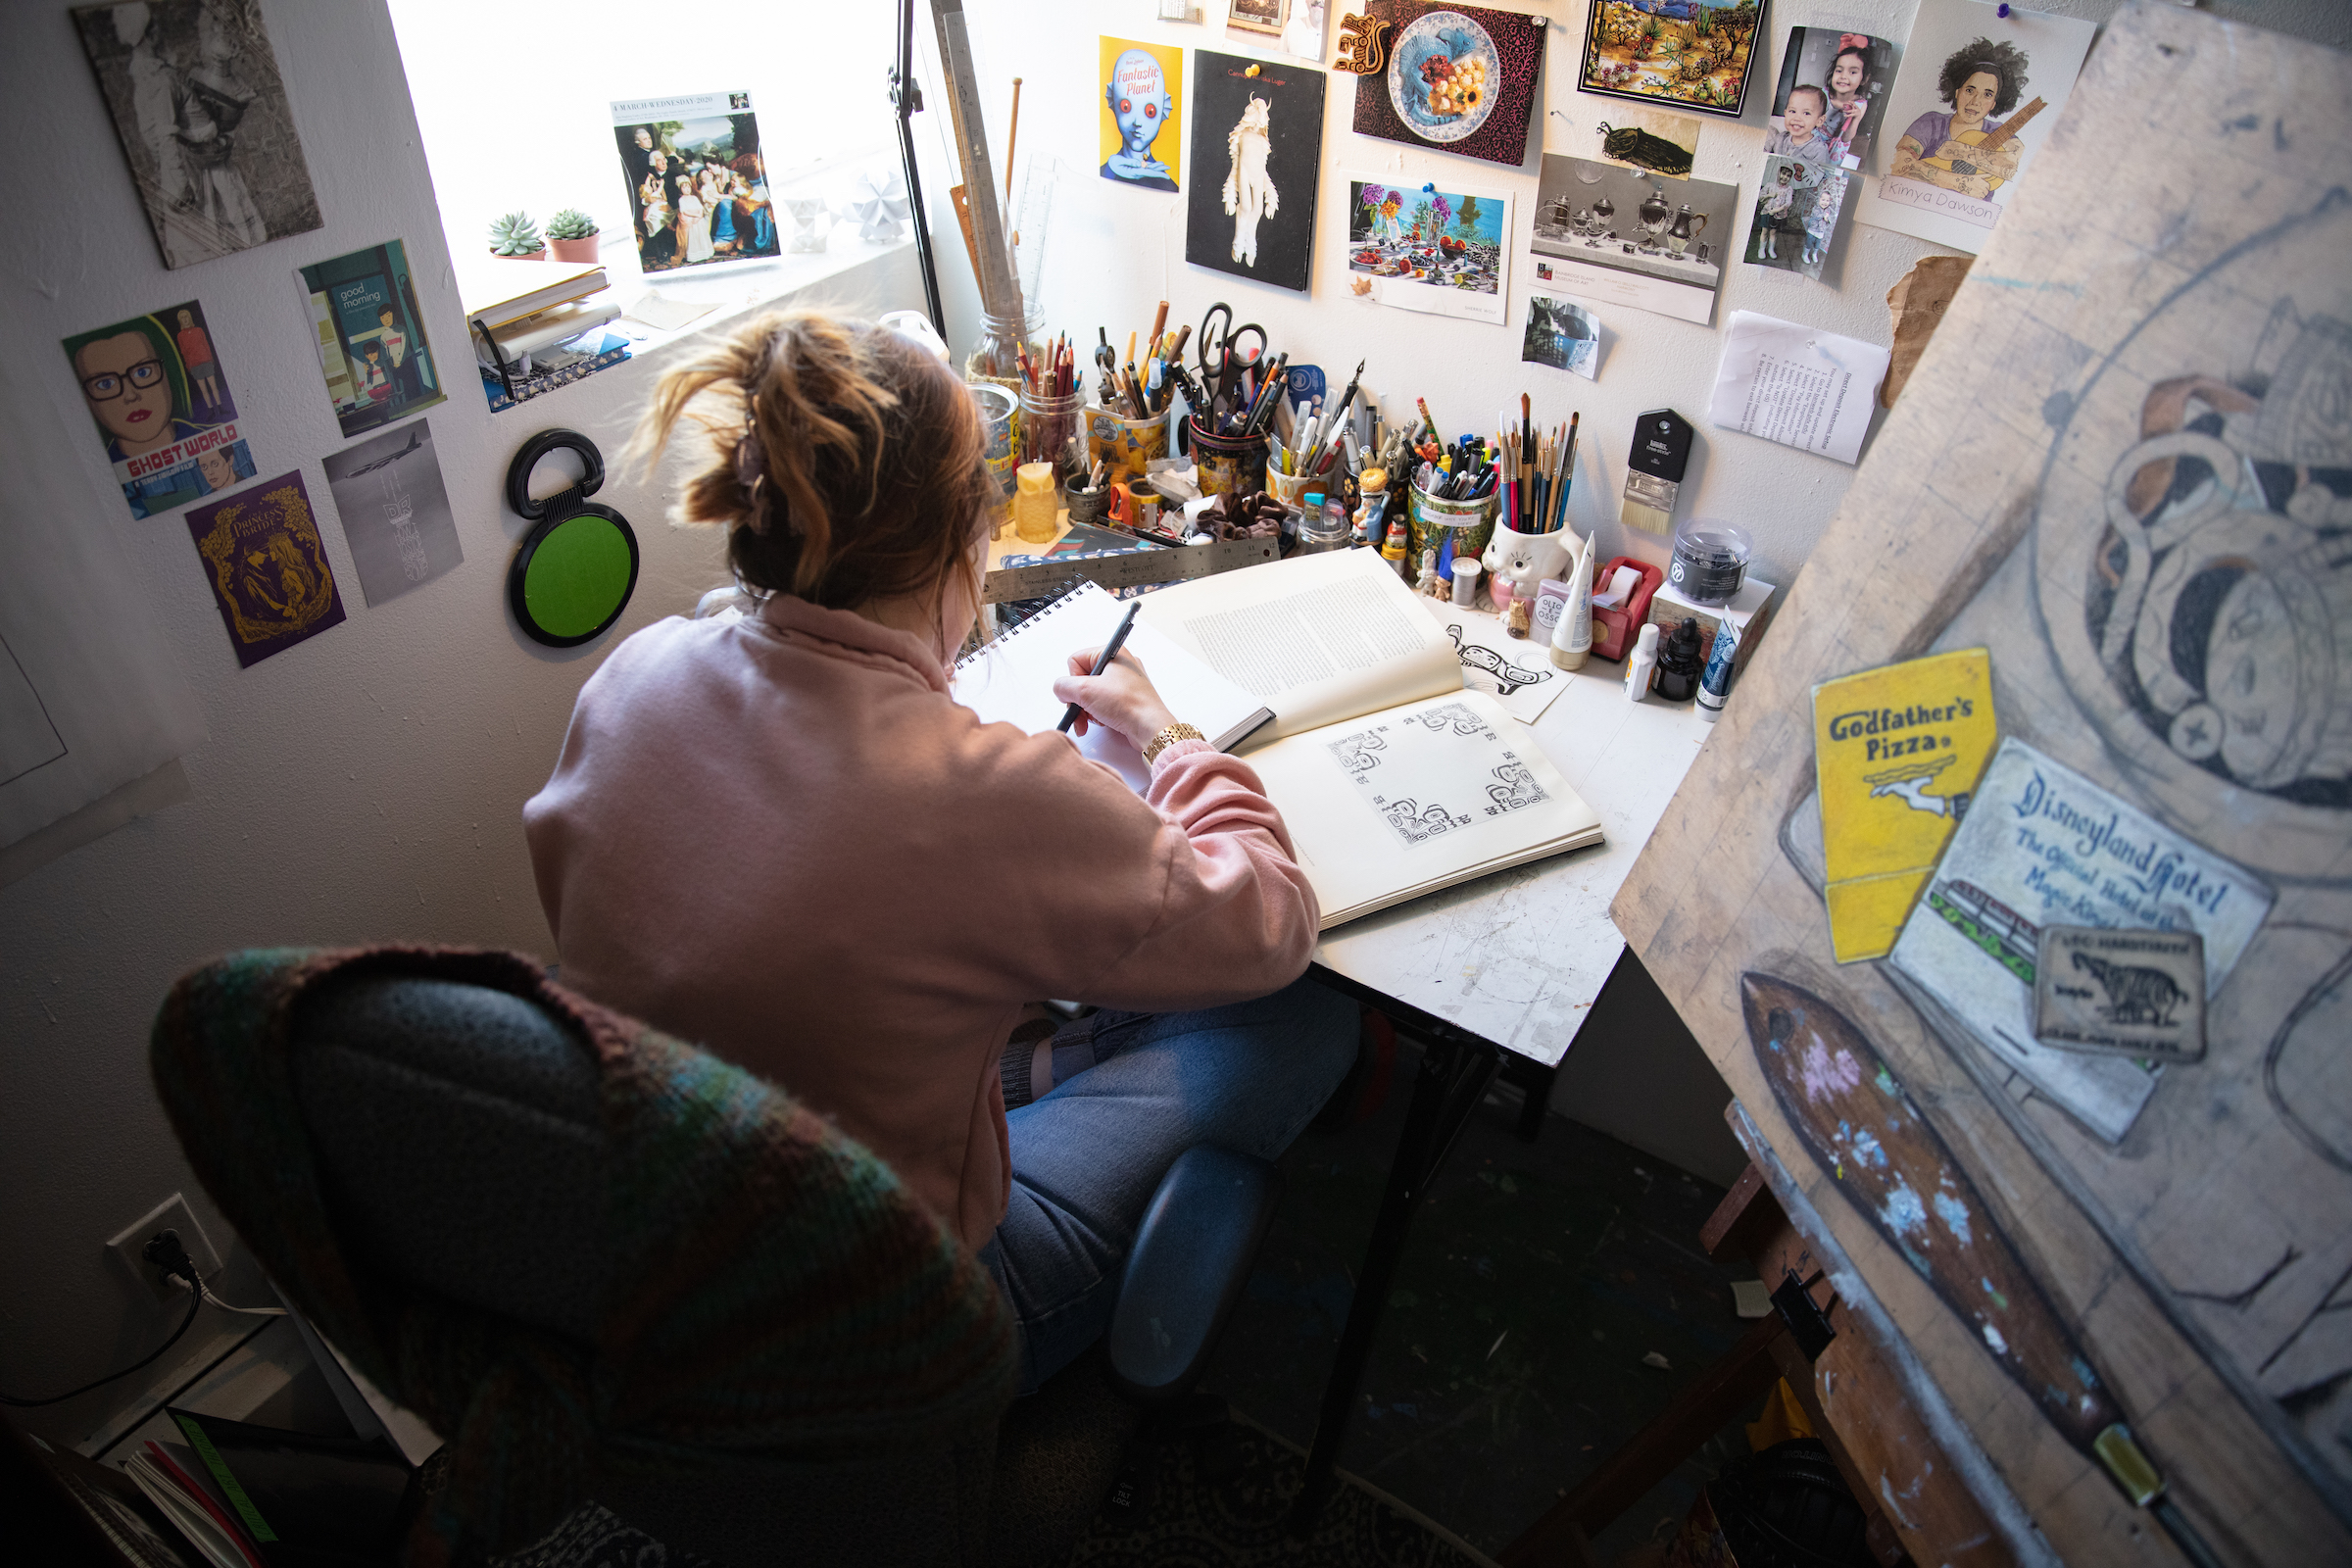 Graduate student working at a drawing table by a window, surrounded by reference images and art supplies